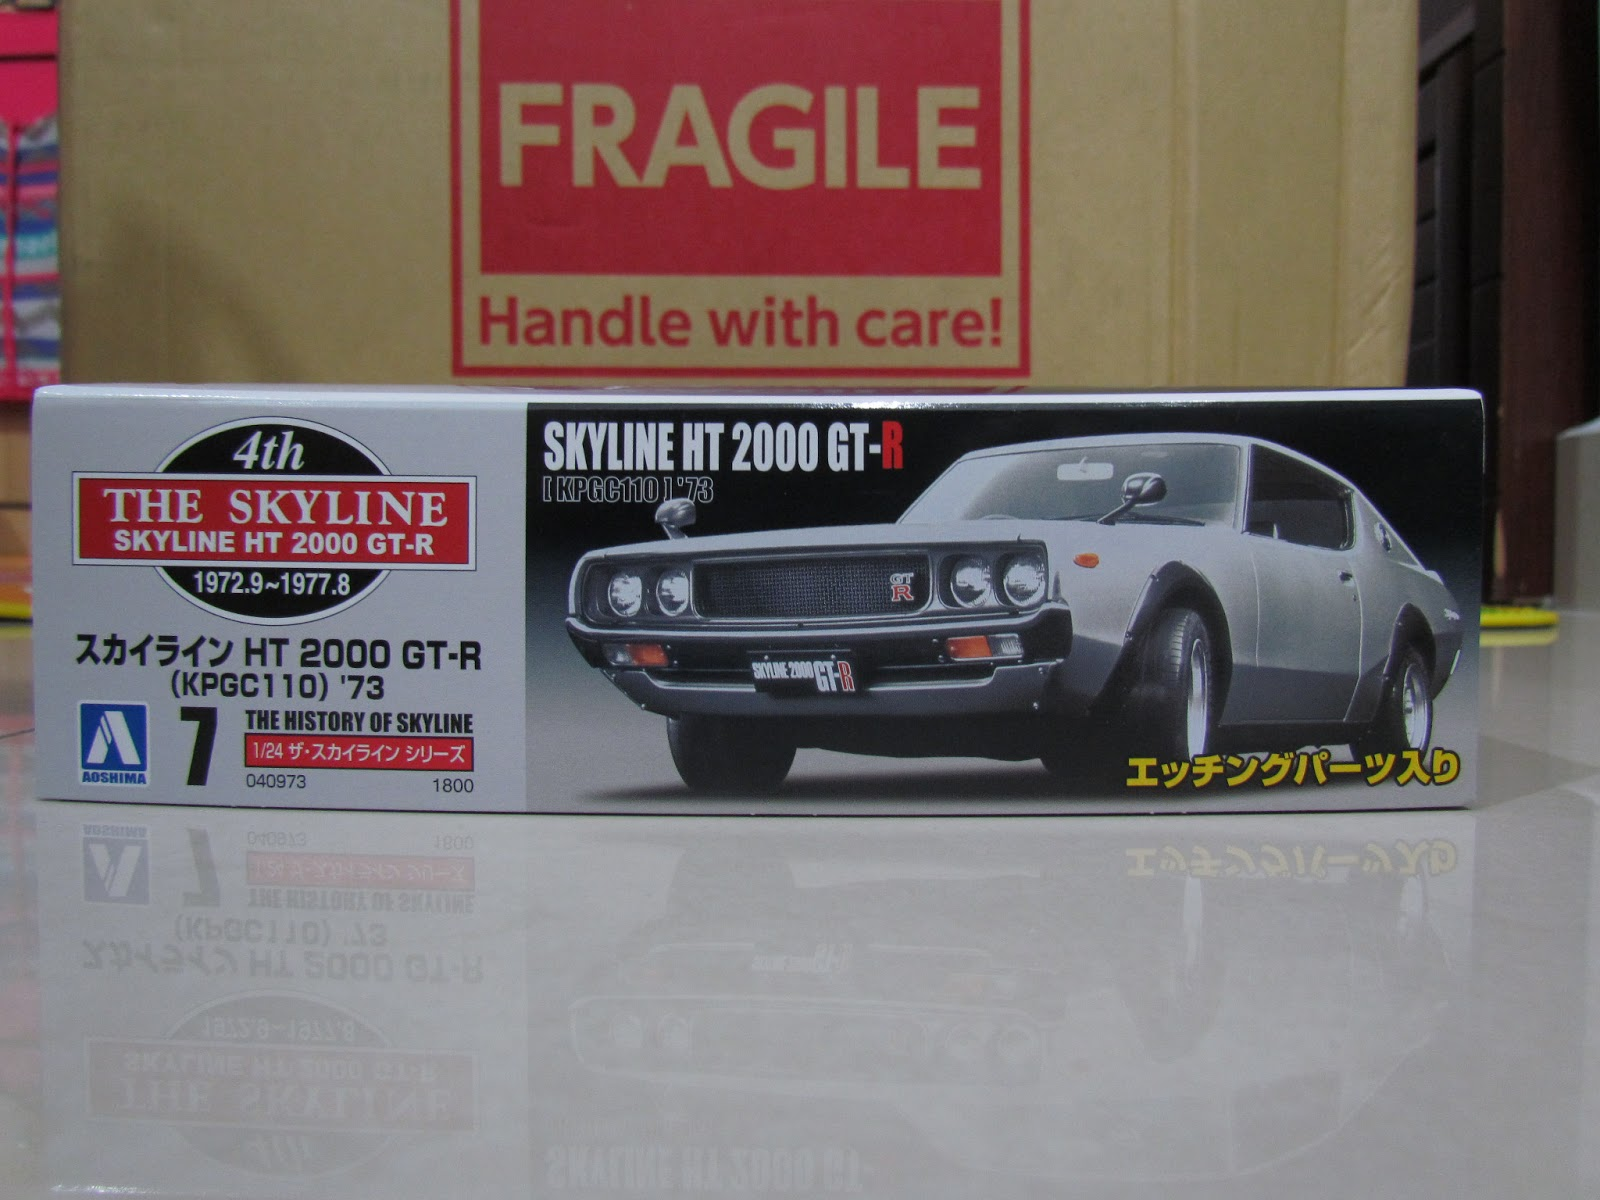 Mha Hobby 2013 Nissan Gt R Silver No 23 Tomica Reguler Takara Tomy Aoshima Model Kit 1 24 Skyline Kenmeri Ht 2000gt Kpgc110 73 Brand New Never Been Opened Ready To Assemble Detailed Scale